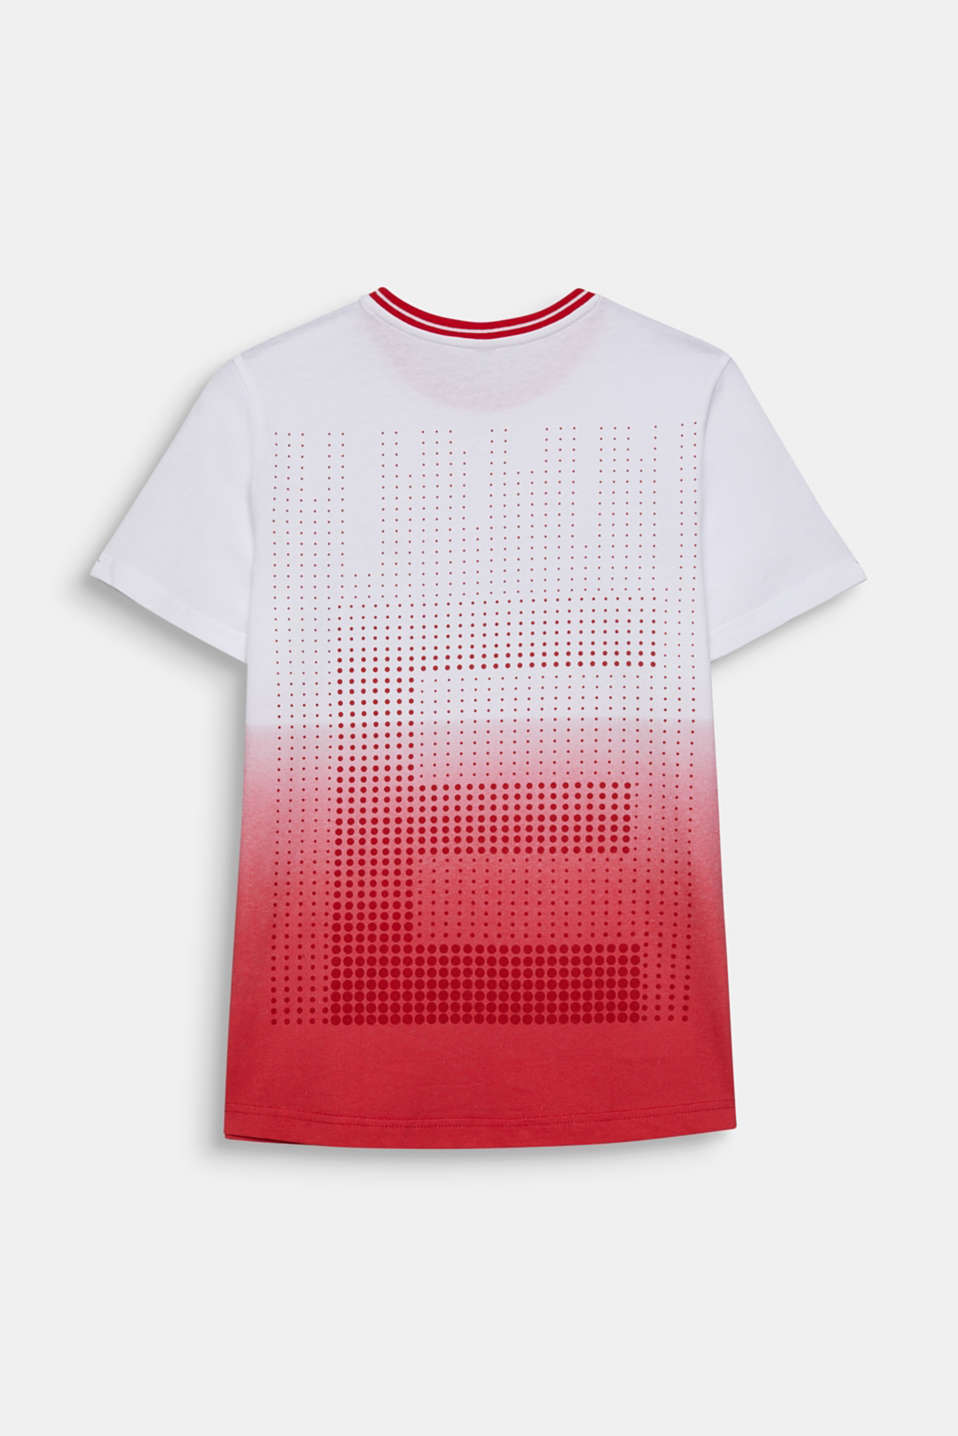 Graduated colour tee, 100% cotton, LCRED, detail image number 1